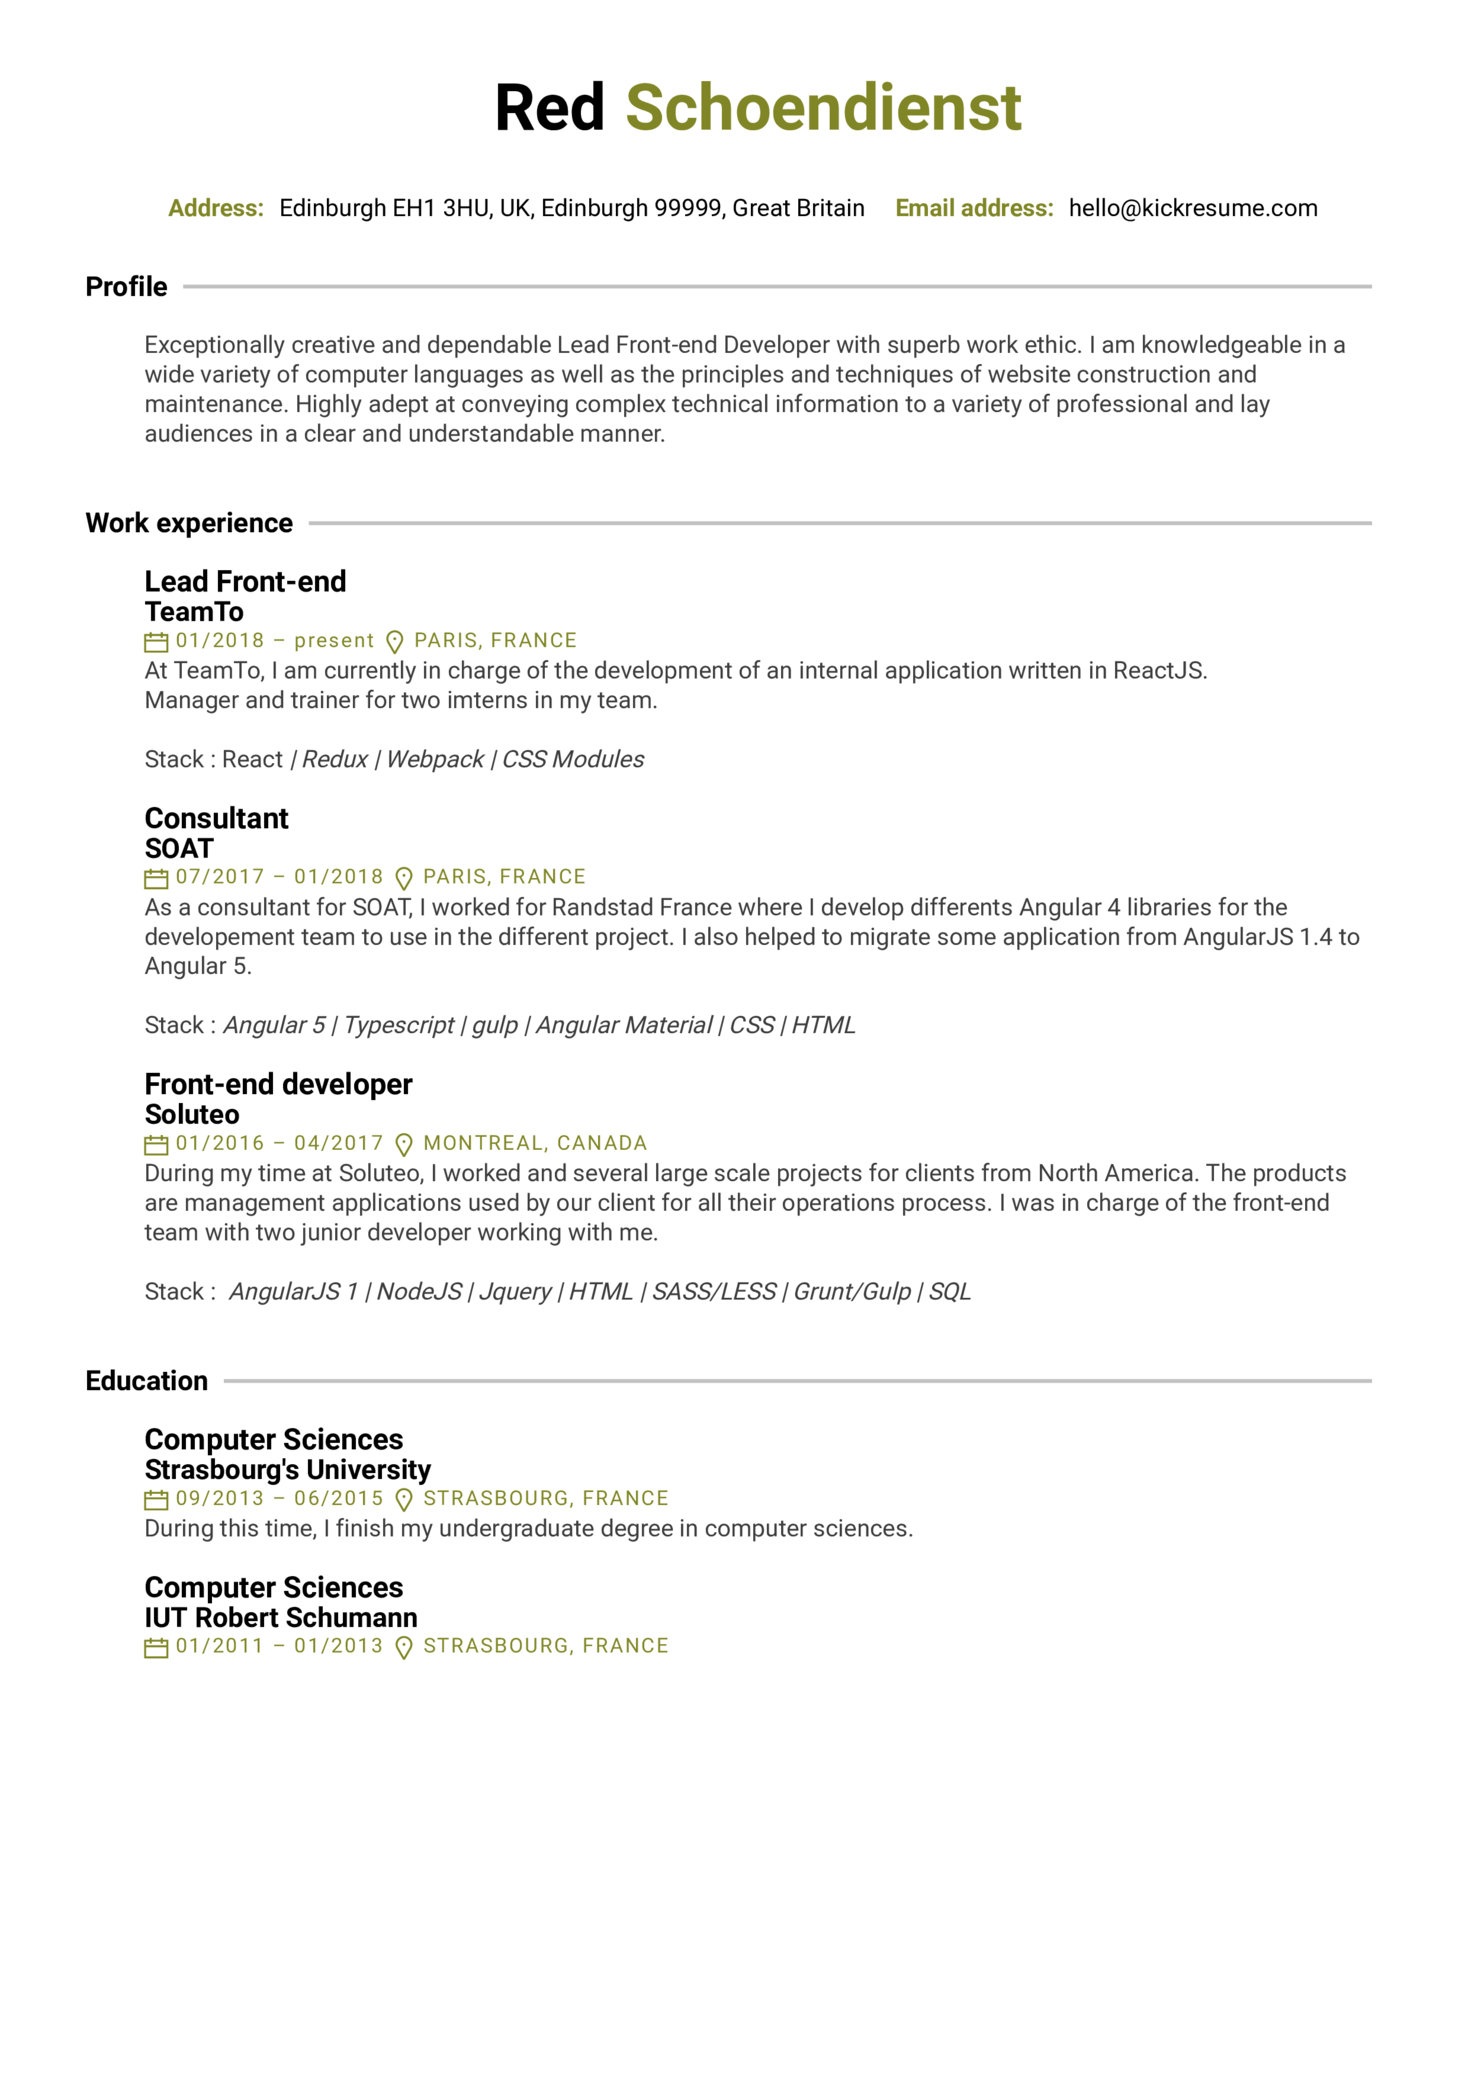 Resume Examples By Real People TeamTo Lead Front End Developer Cv